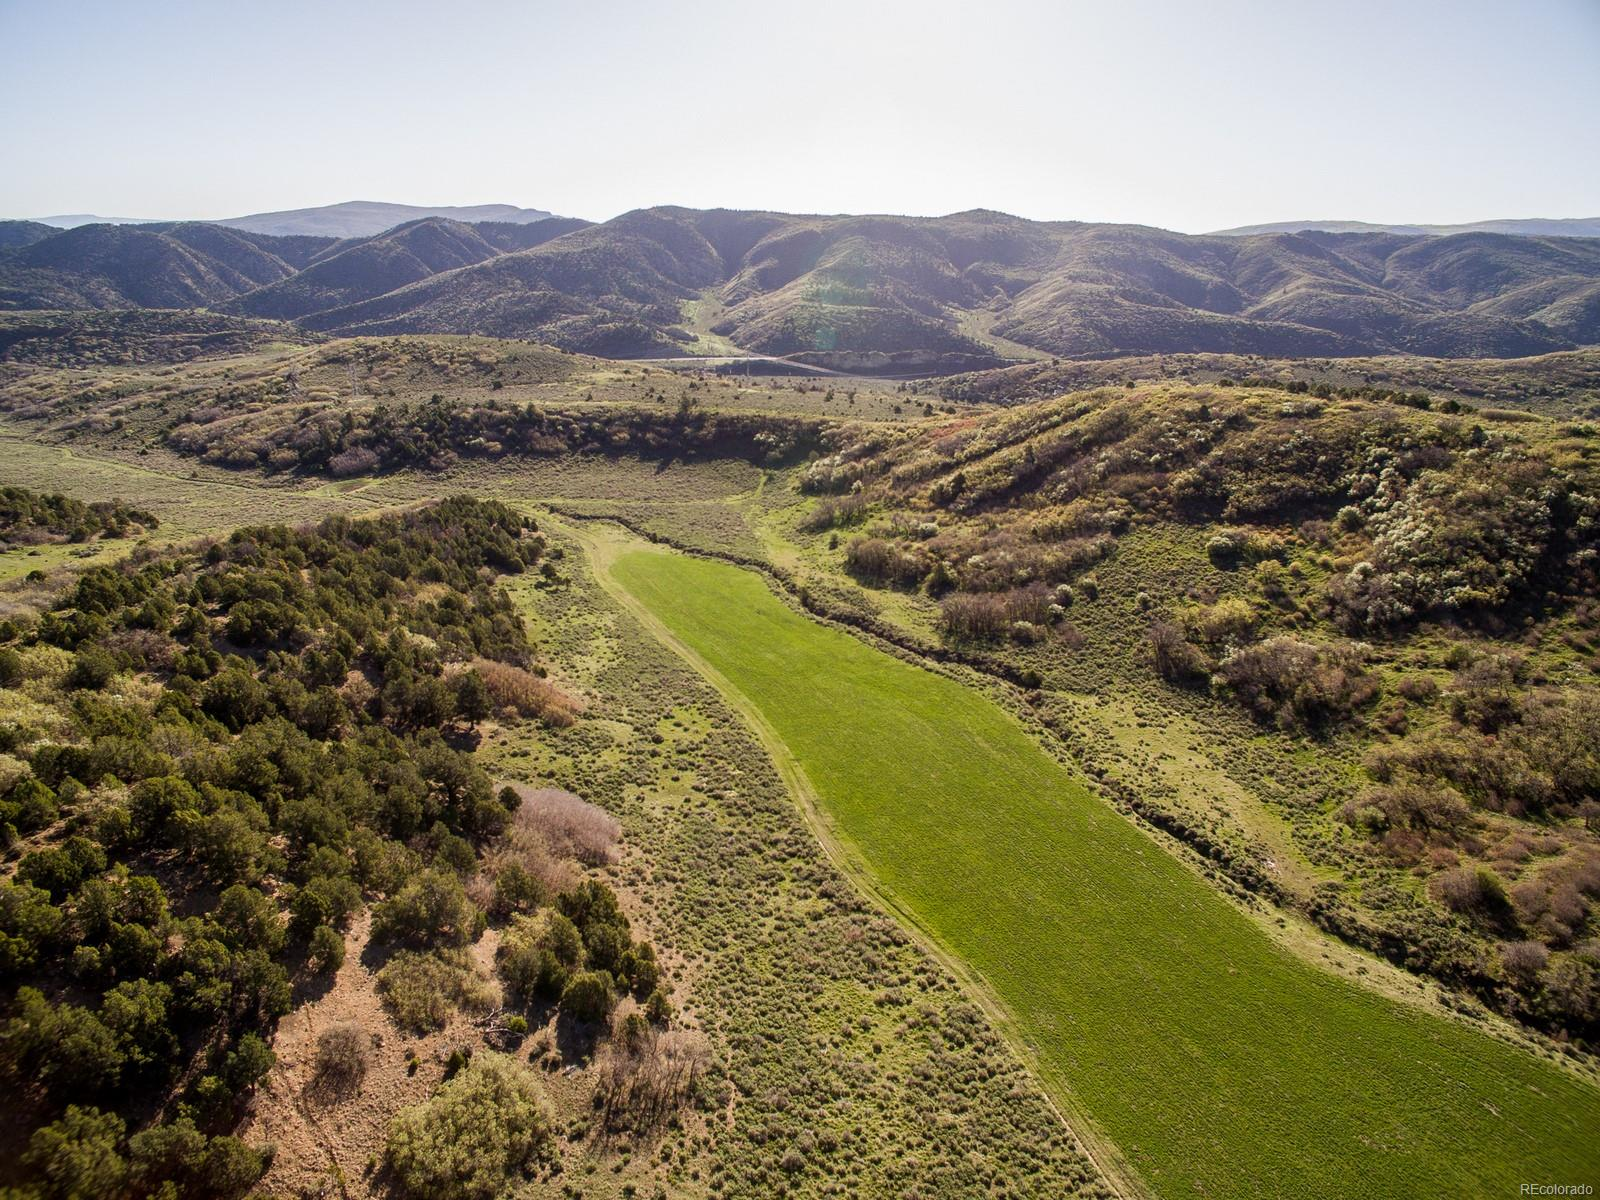 0 South Highway 13, Meeker, CO 81641 - Meeker, CO real estate listing